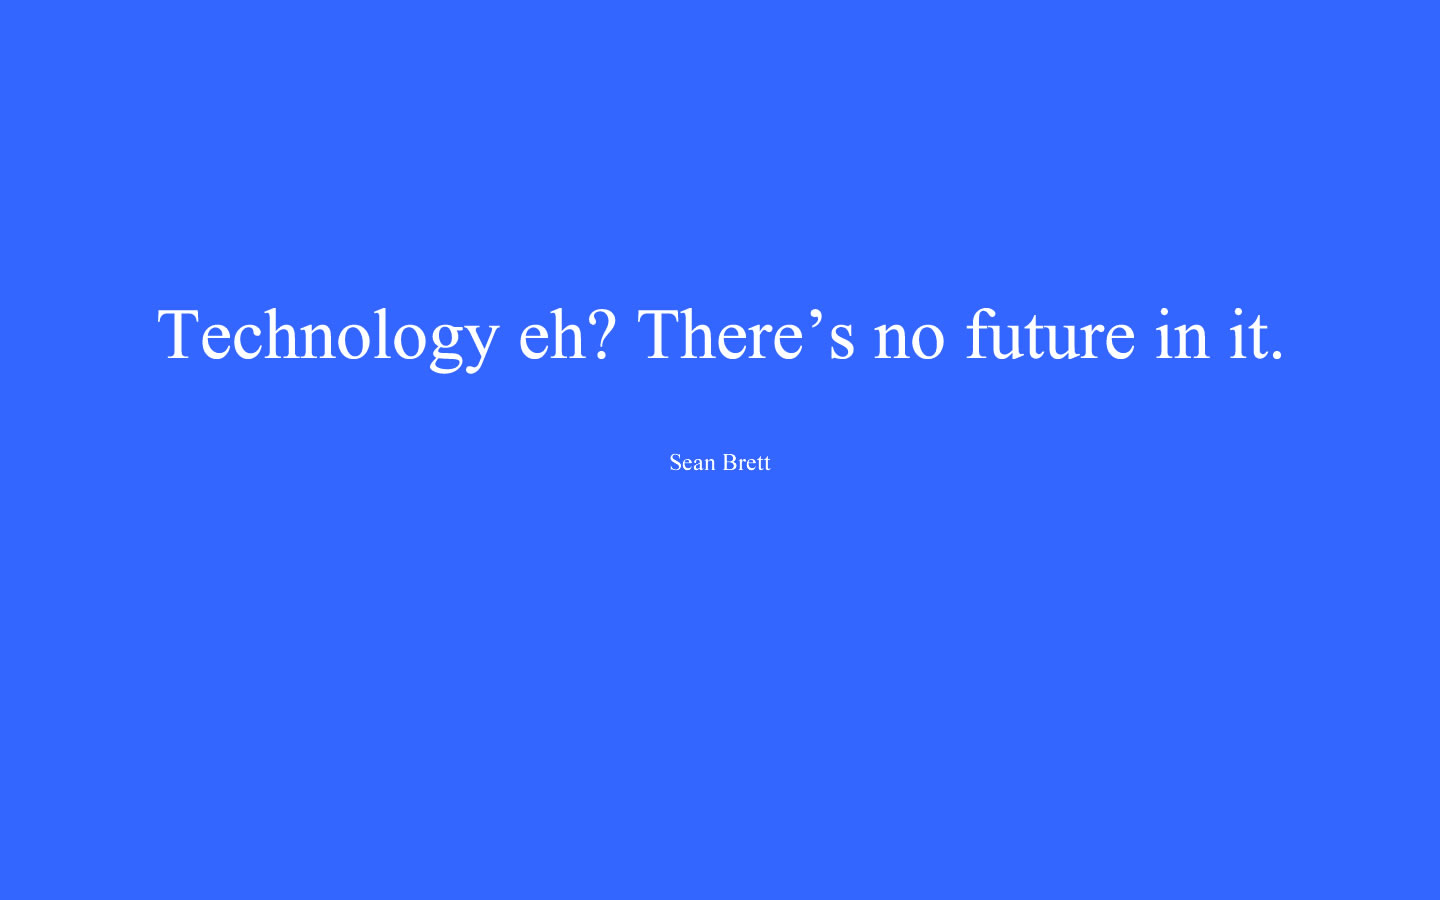 Technology Quotes technology eh. there's no future in it.